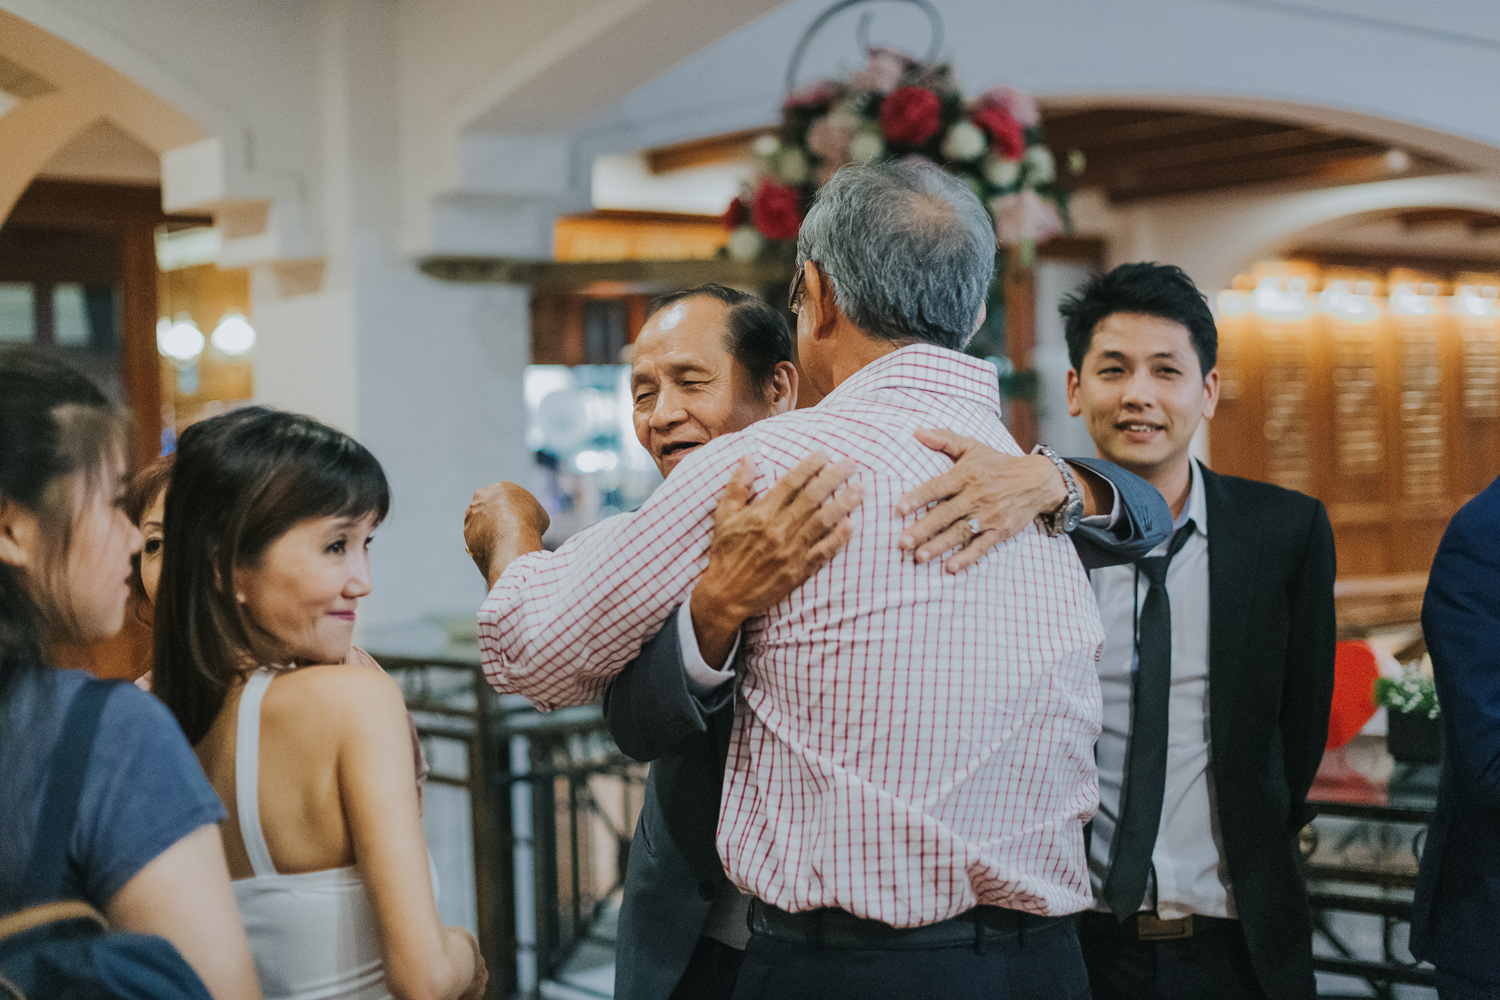 bittersweet photography Singapore wedding photographer jonathan 143